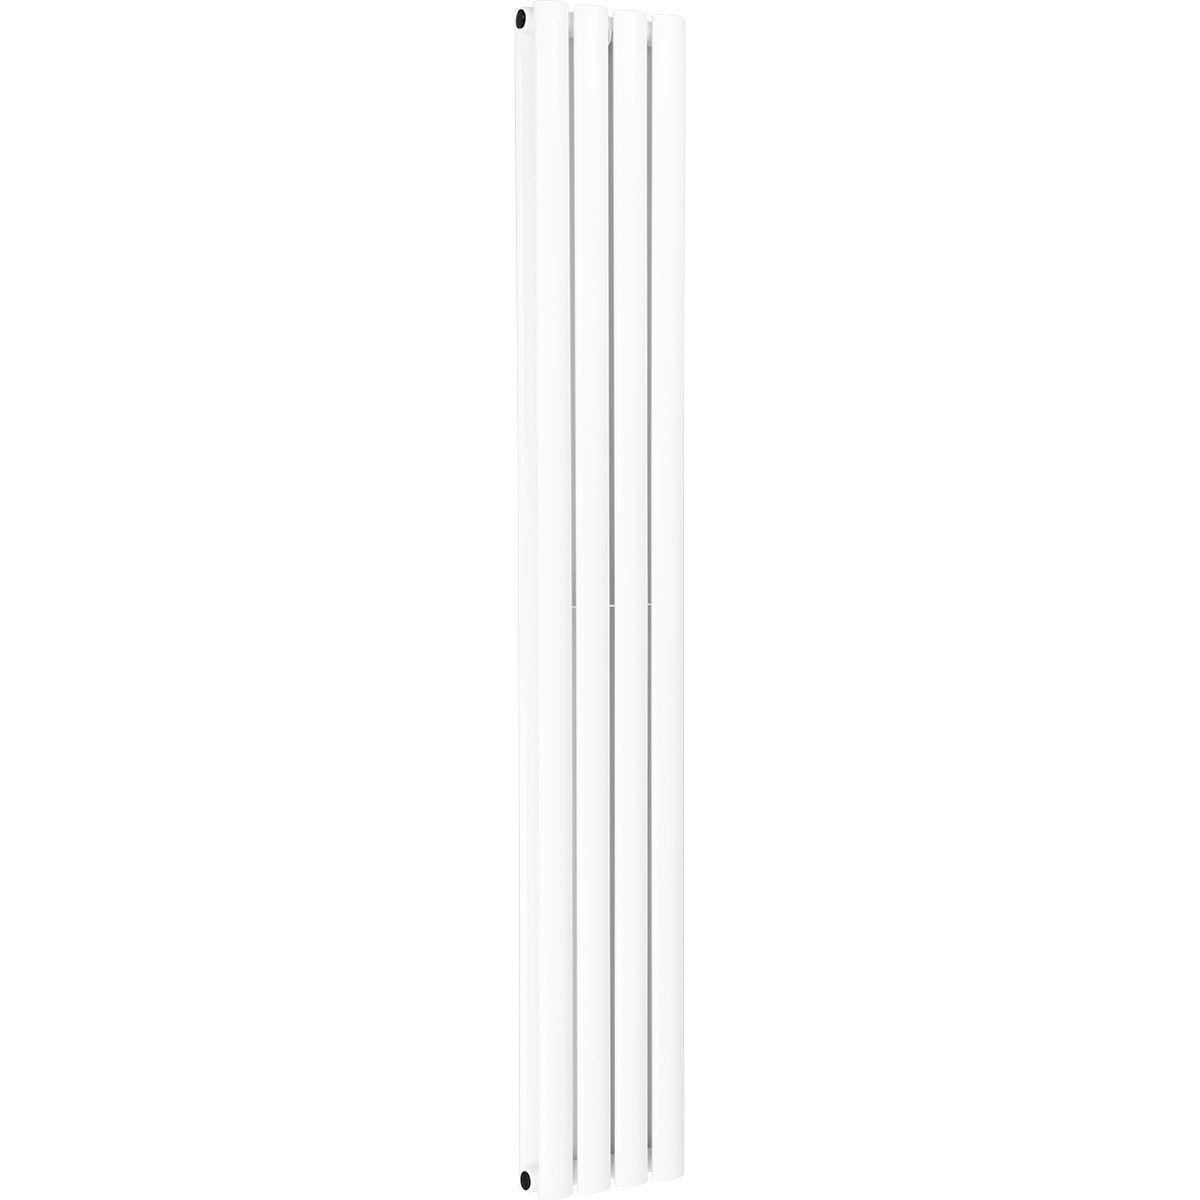 Boone 1600 x 240 Double Panel White Radiator